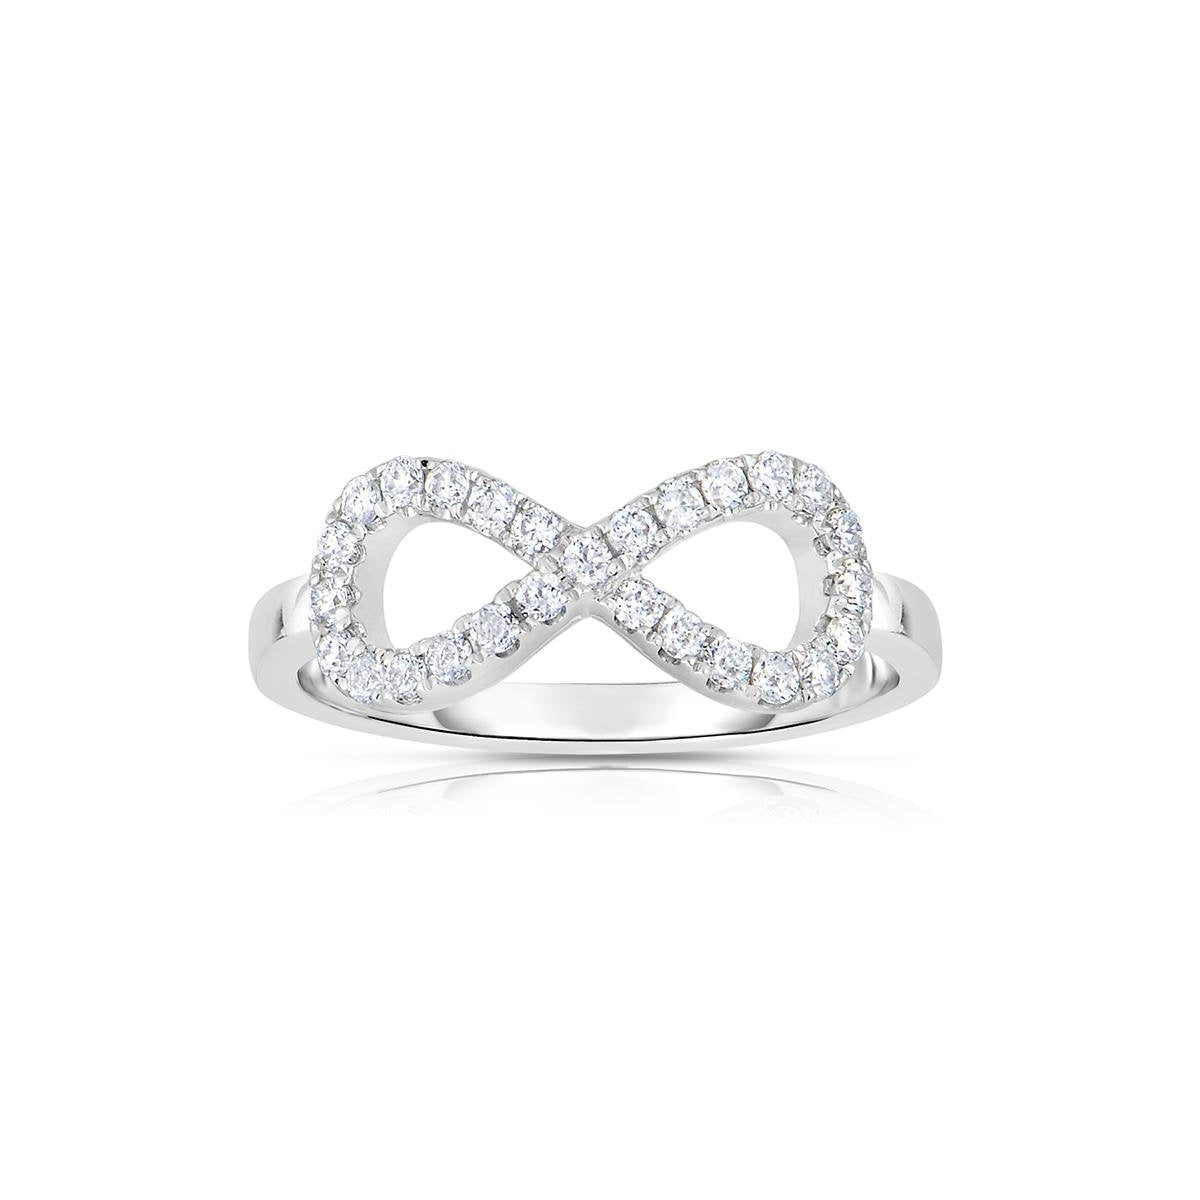 Sabel Collection 14K White Gold Infinity Ring with Diamonds